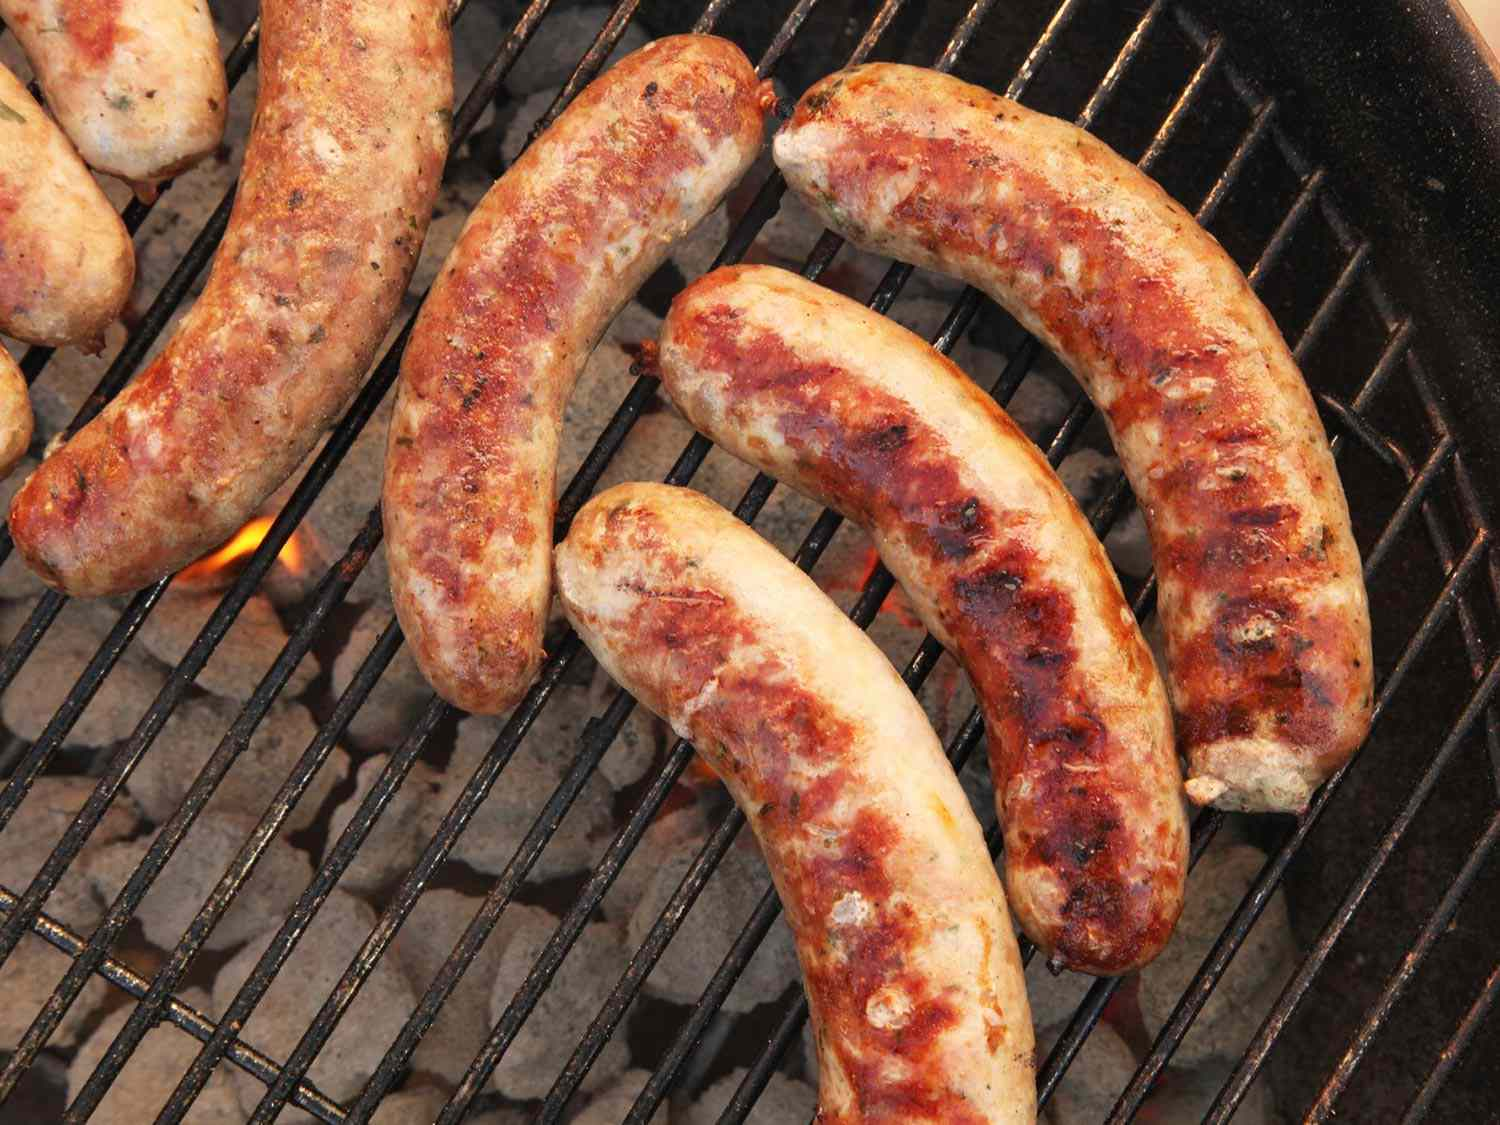 How Long to Cook Sausage on the Grill